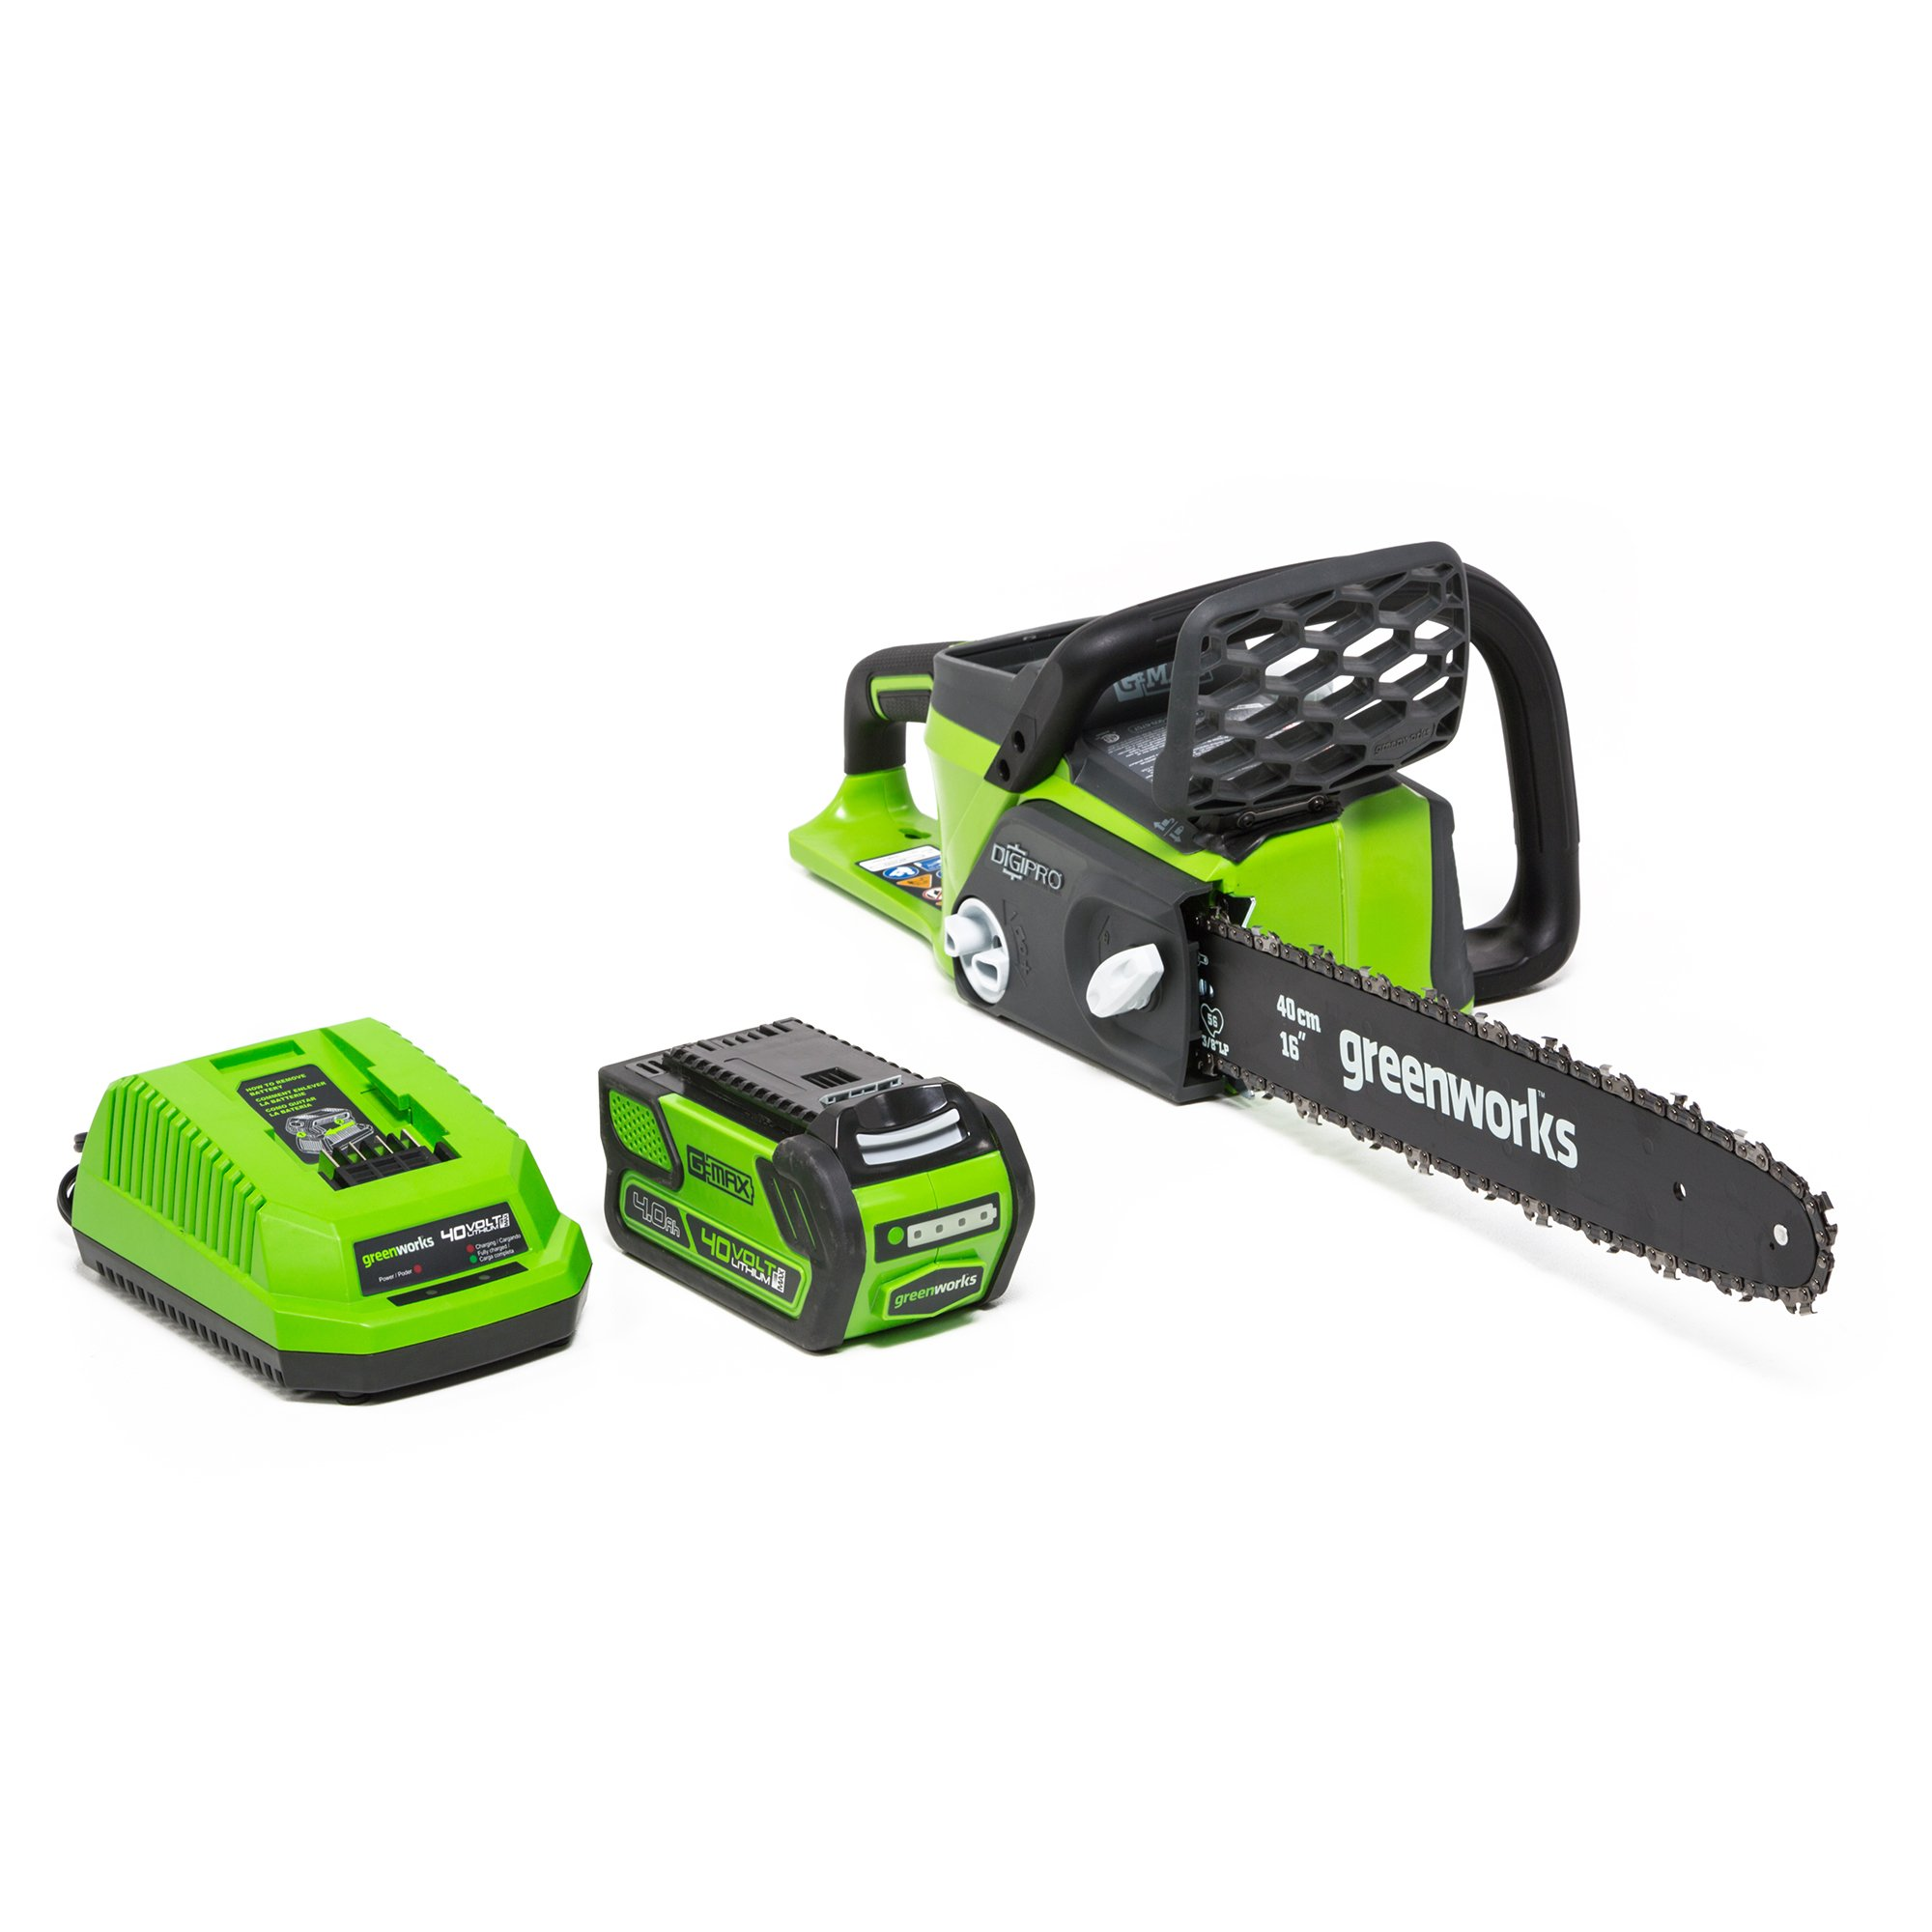 Greenworks G-MAX 40V 16-Inch Cordless Chainsaw, 4AH Battery and a Charger Included, 20312